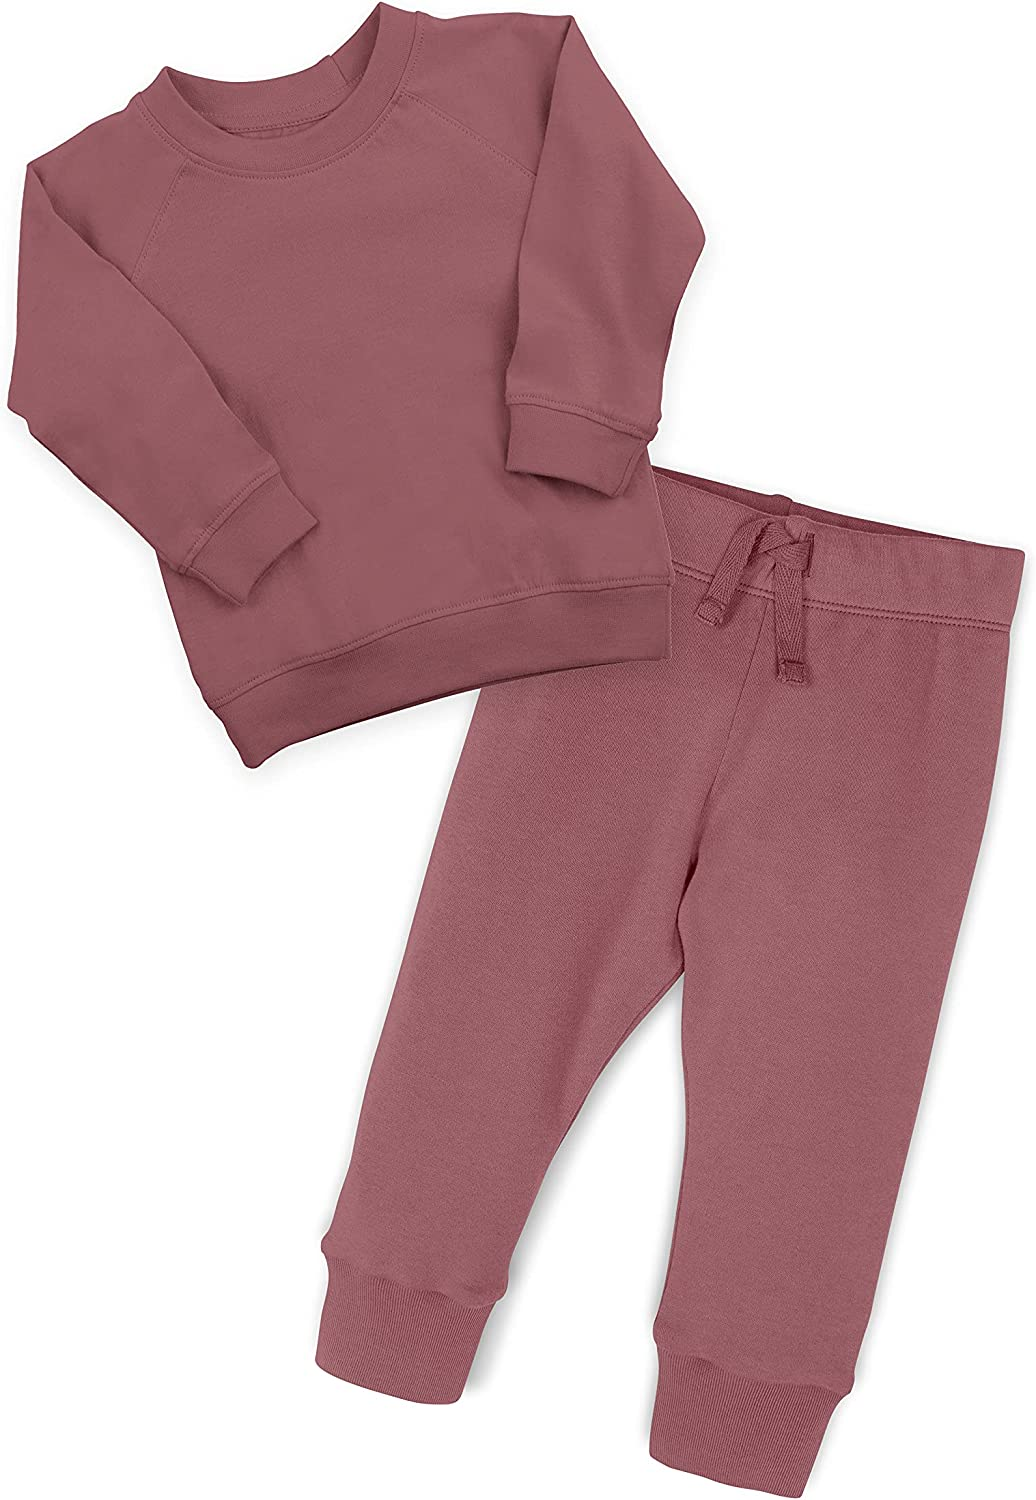 Organic 2 Piece Play Set - Berry 5% OFF Credence 4T